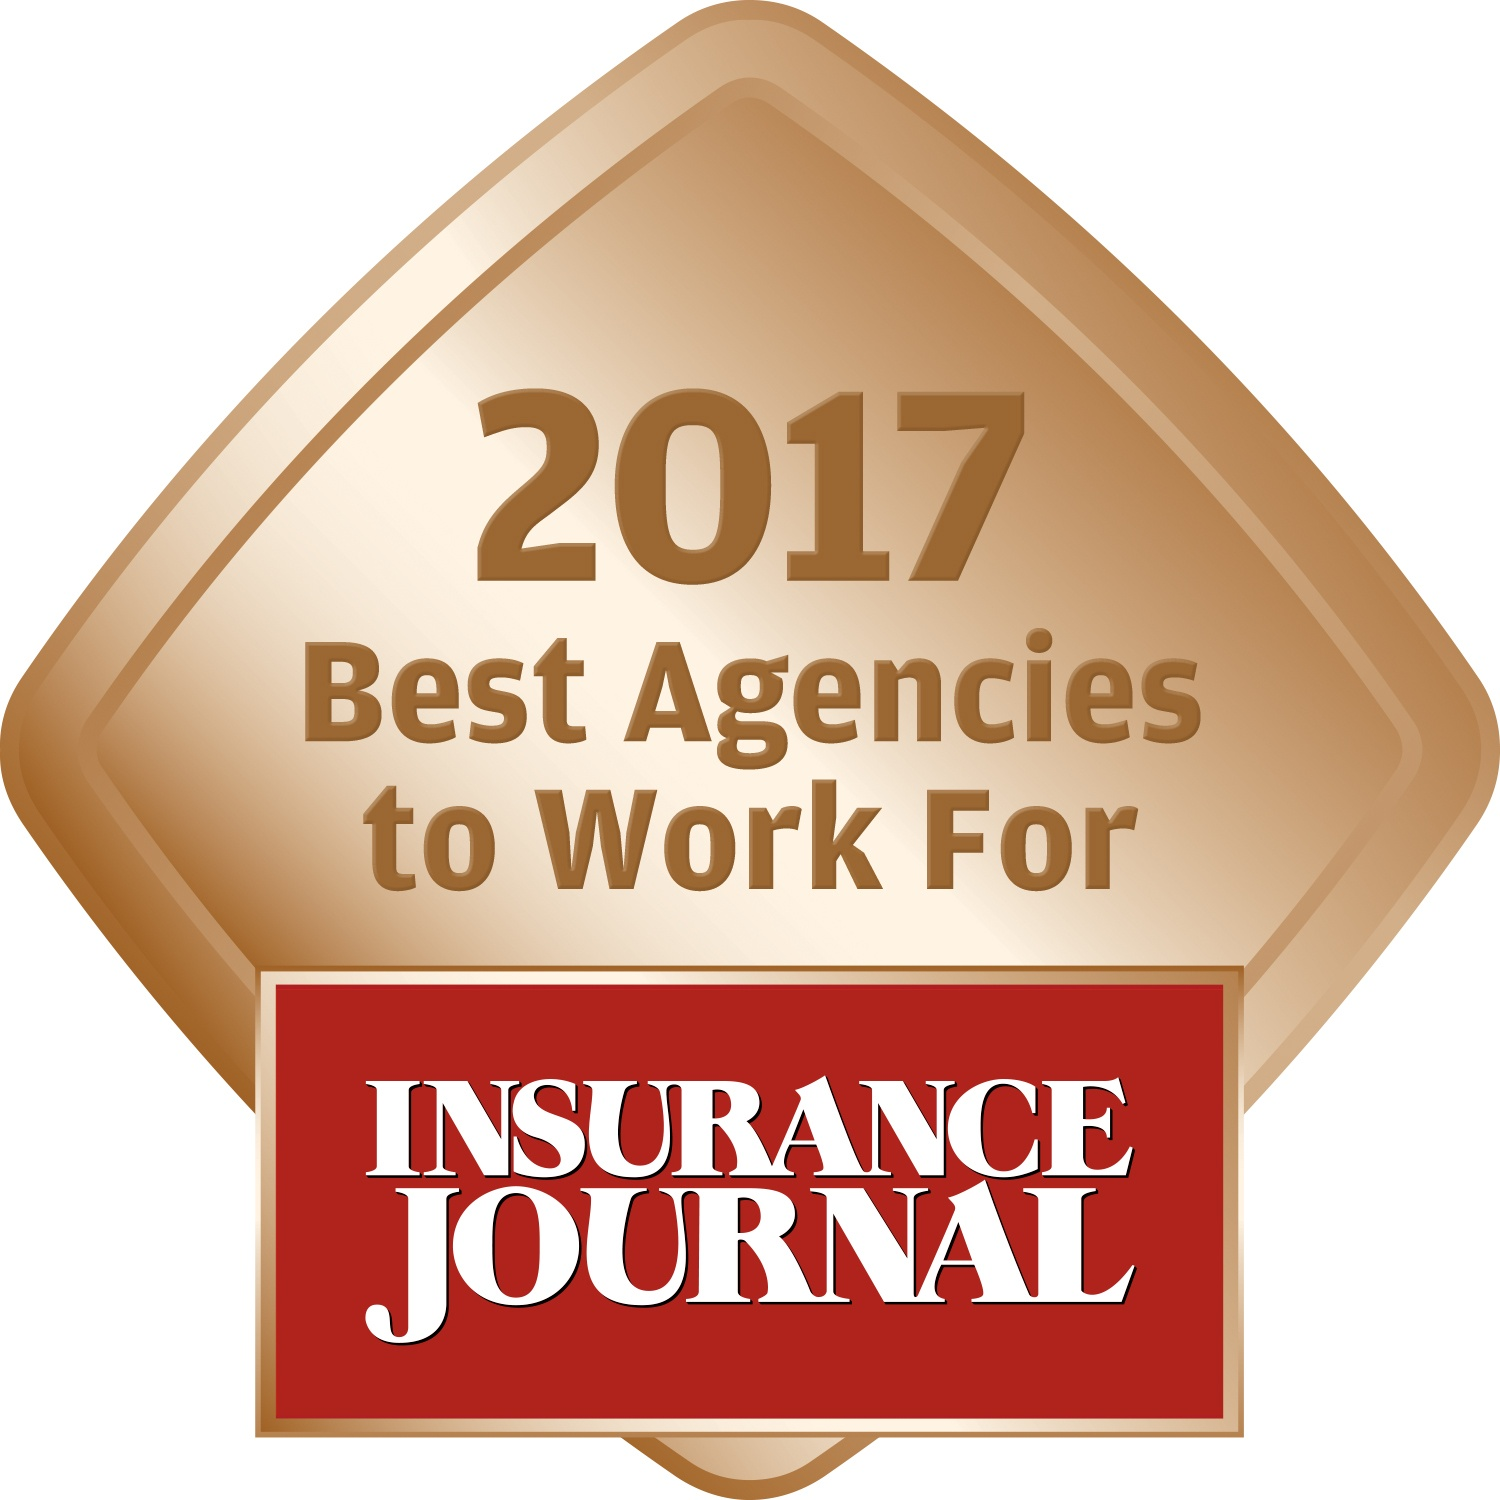 Best Agencies to Work For 2017 Bronze.jpg